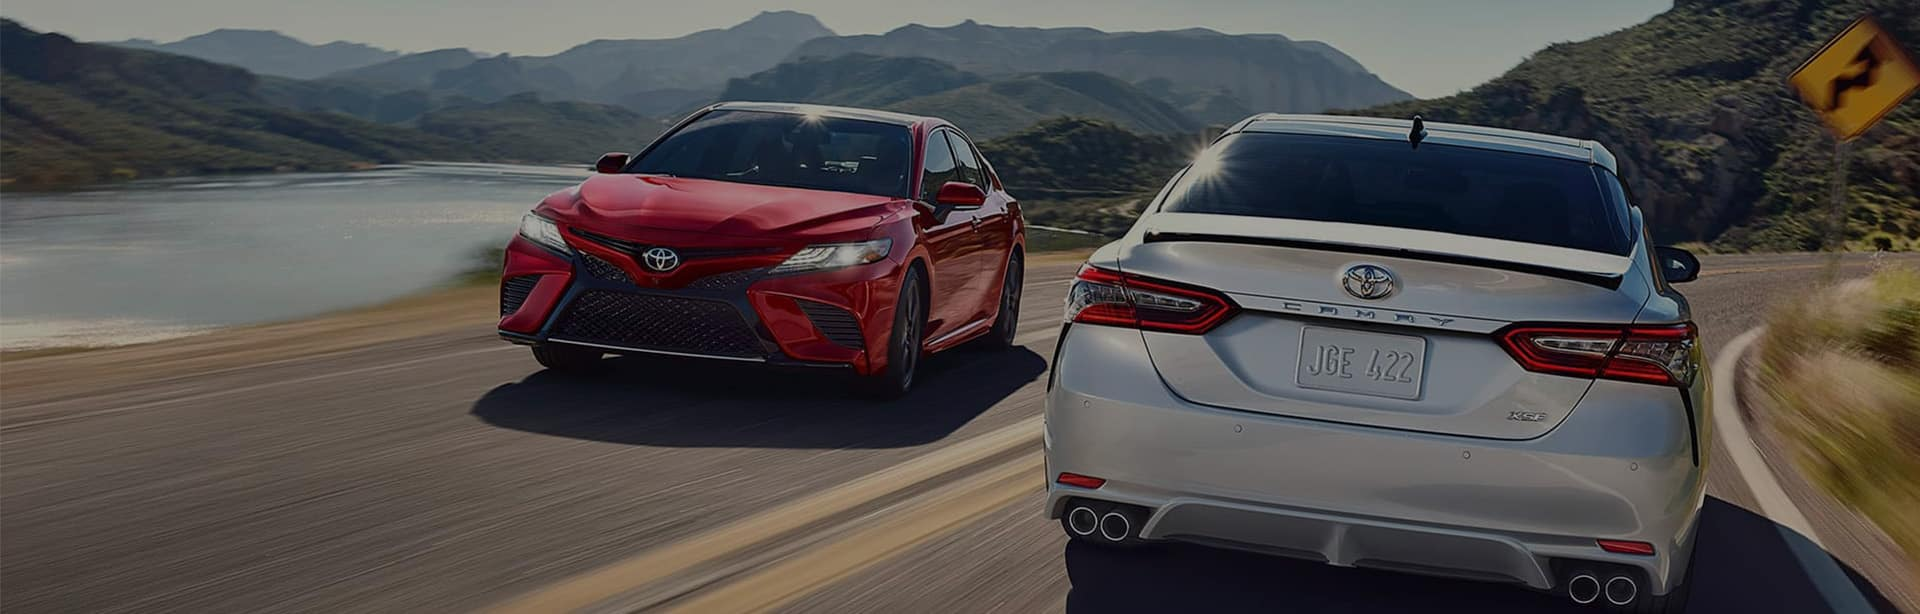 Alt Text: On a sunny day over looking a lake two Toyota camrys - one red - the other silver - pass each other as they glimmer in the sunlight - but the image has a dark hue